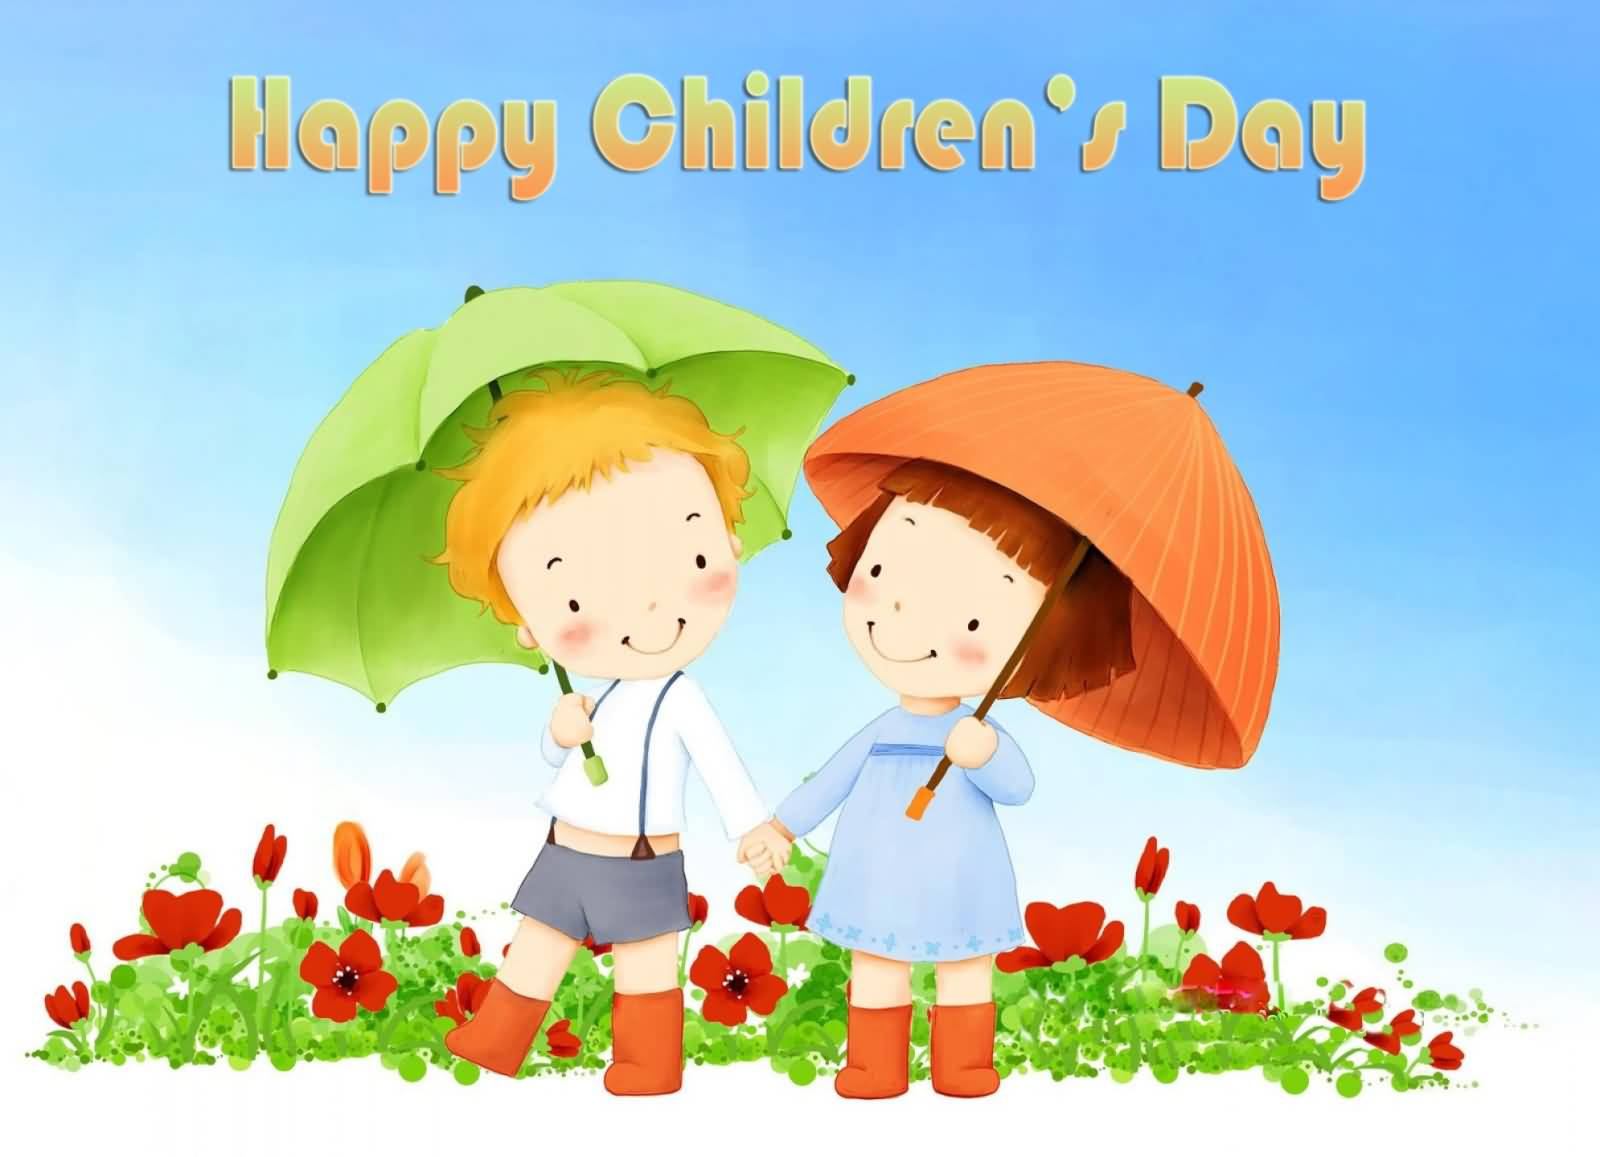 50 most adorable greeting pictures and photos of childrens day 2016 happy childrens day two cute kids hand in hand picture m4hsunfo